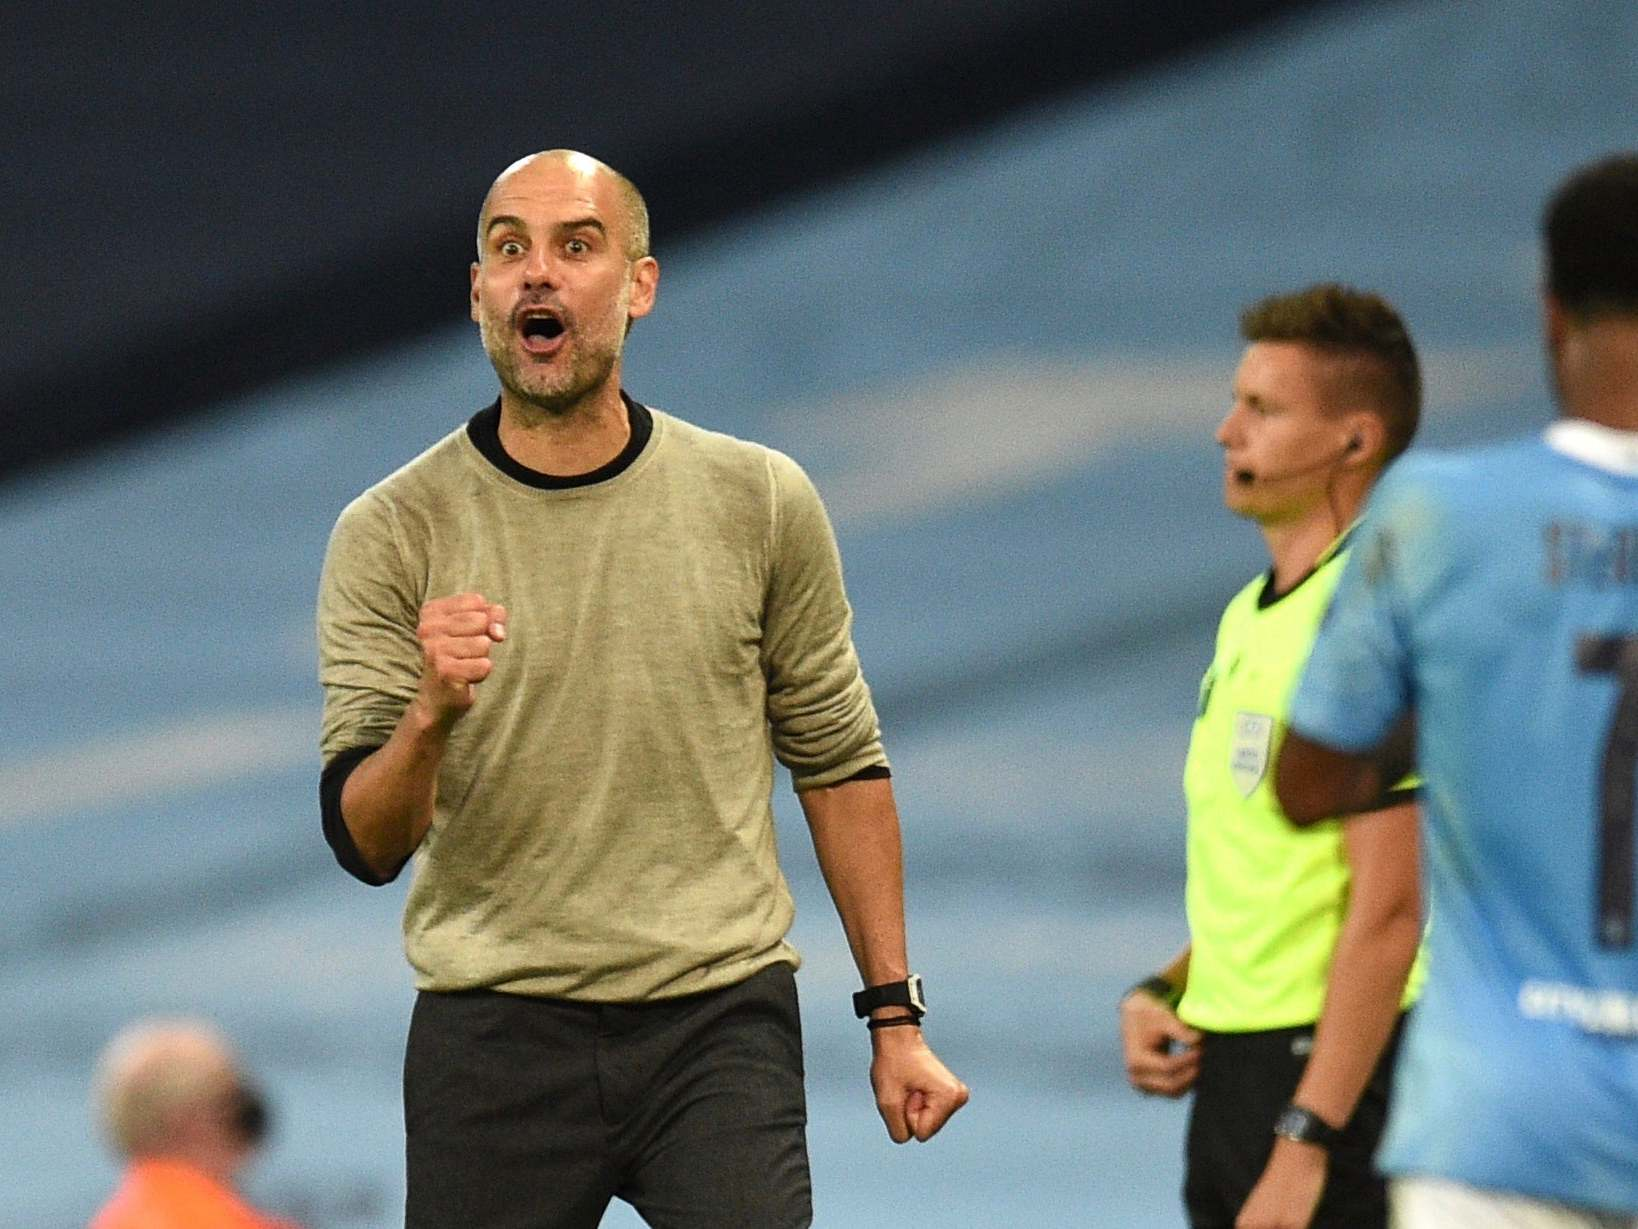 'Why are we so special?' Pep Guardiola plays down Man City's favourites tag